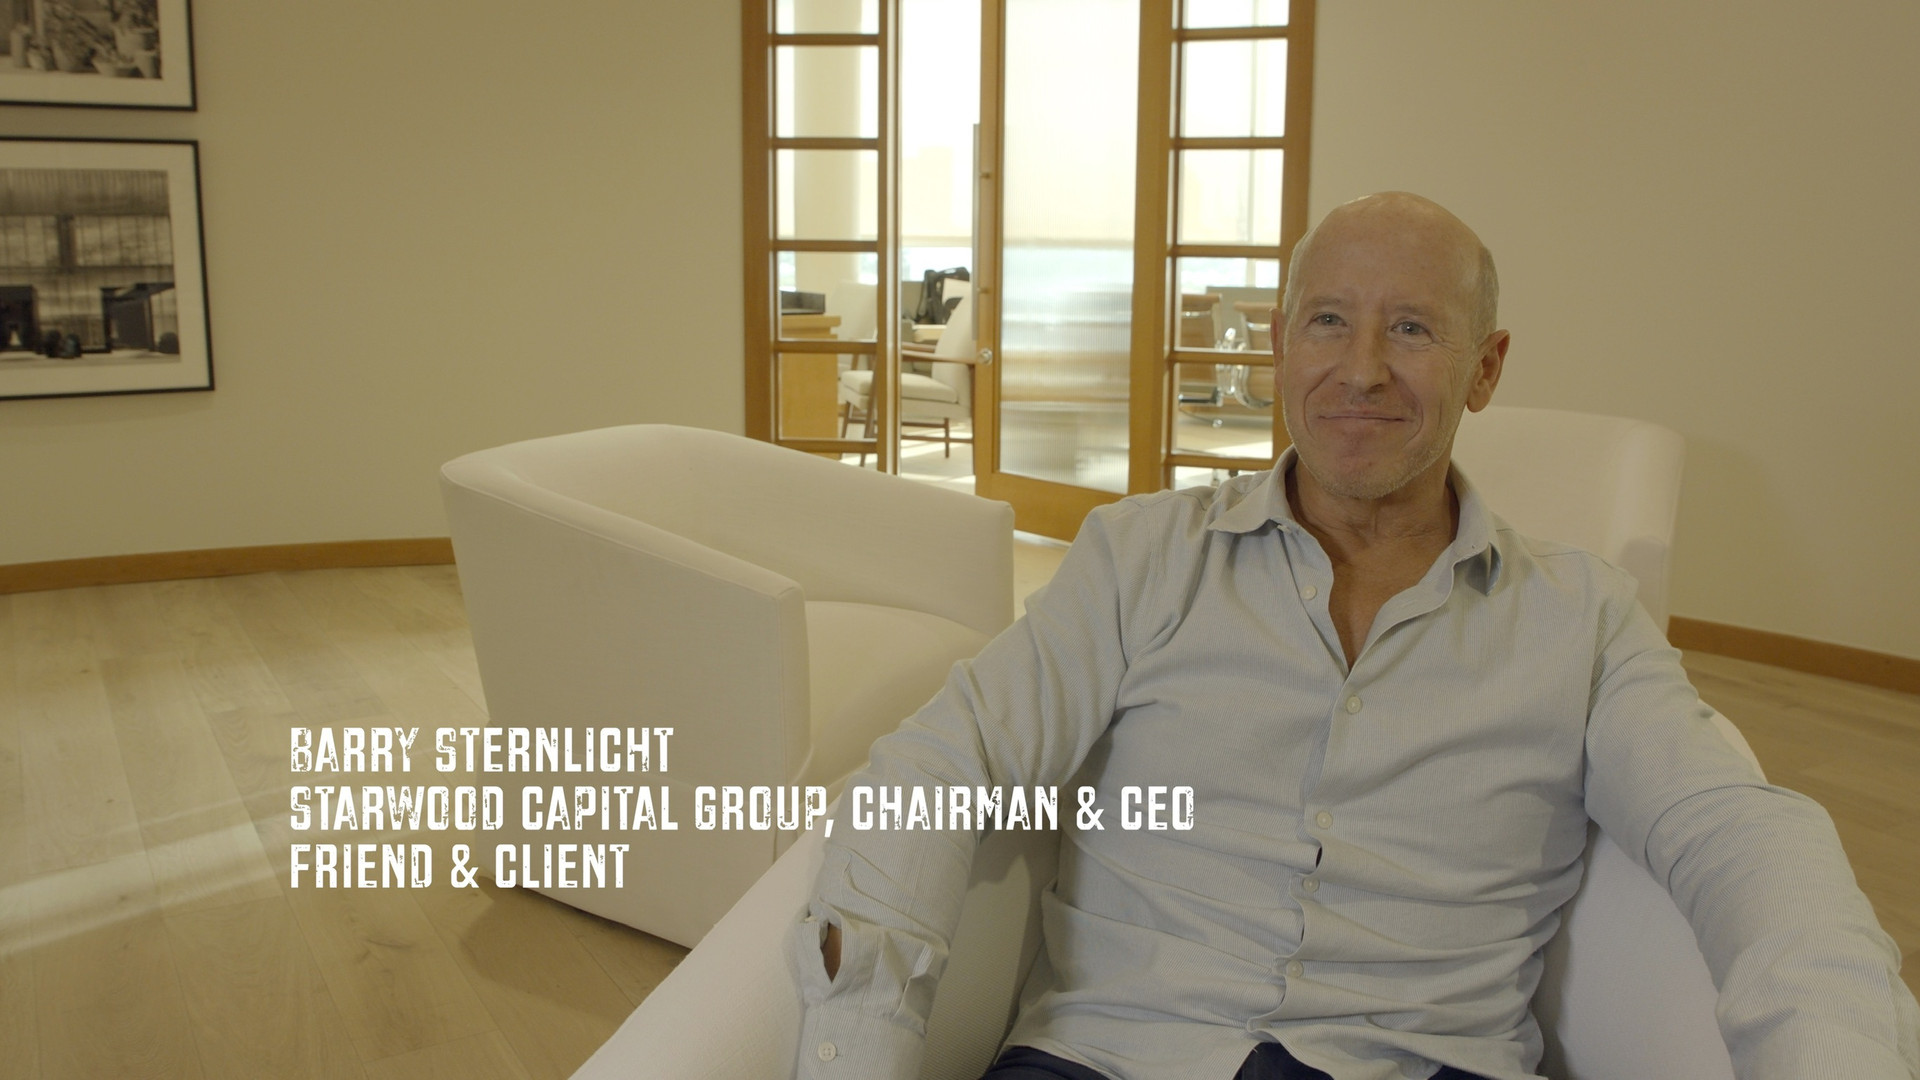 I'm very fortunate to be surrounded by several extraordinary people. Barry Sternlicht is no exception. He's a great example of enormous success paired with humble energy. He's the co-founder, chairman, CEO of Starwood Capital Group, and involved in countless projects. I began working with him a few years ago and immediately noticed his work ethic and focused mentality. He takes fitness seriously and always makes time to train. I wouldn't have time to tell you how much I've learned from this gentleman, but there's a long list. I'm fortunate to partner with him having @anatomy @1hotels with great things in the works. Thank you Barry for trusting me with your training, partnering, and taking time to sit down with Monarch Productions to be an important part of @justakidfromfallriver documentary.